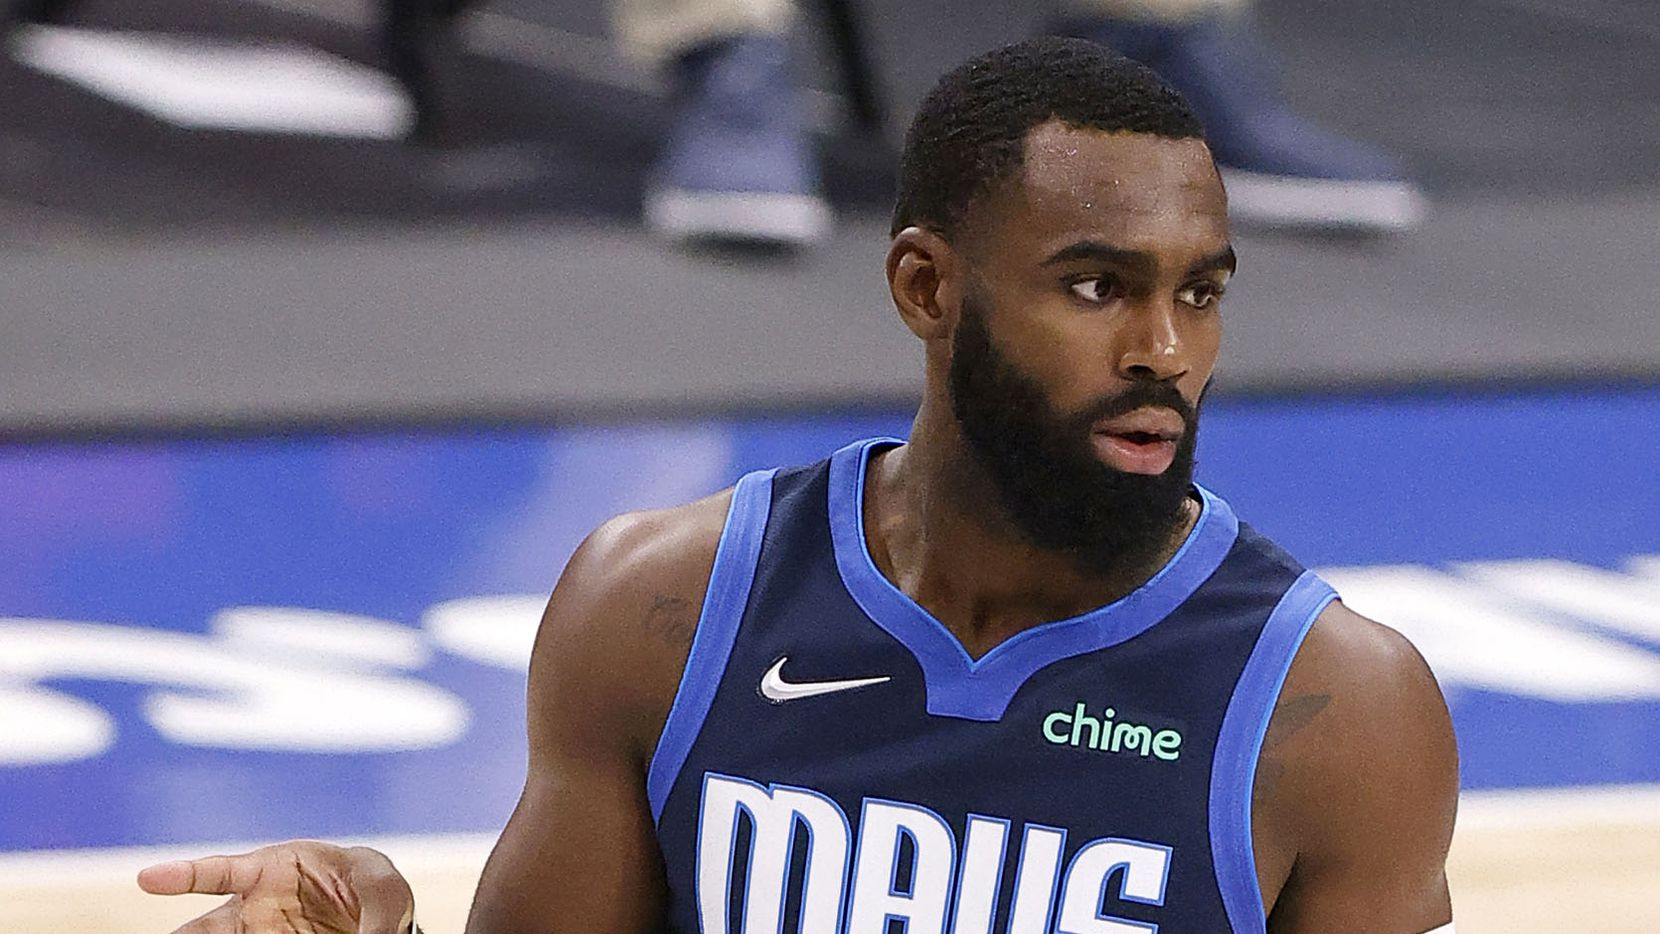 Dallas Mavericks forward Tim Hardaway Jr. (11) signals three after getting the foul and a shot against the Cleveland Cavaliers in the second quarter at the American Airlines Center in Dallas, Friday, May 7, 2021.